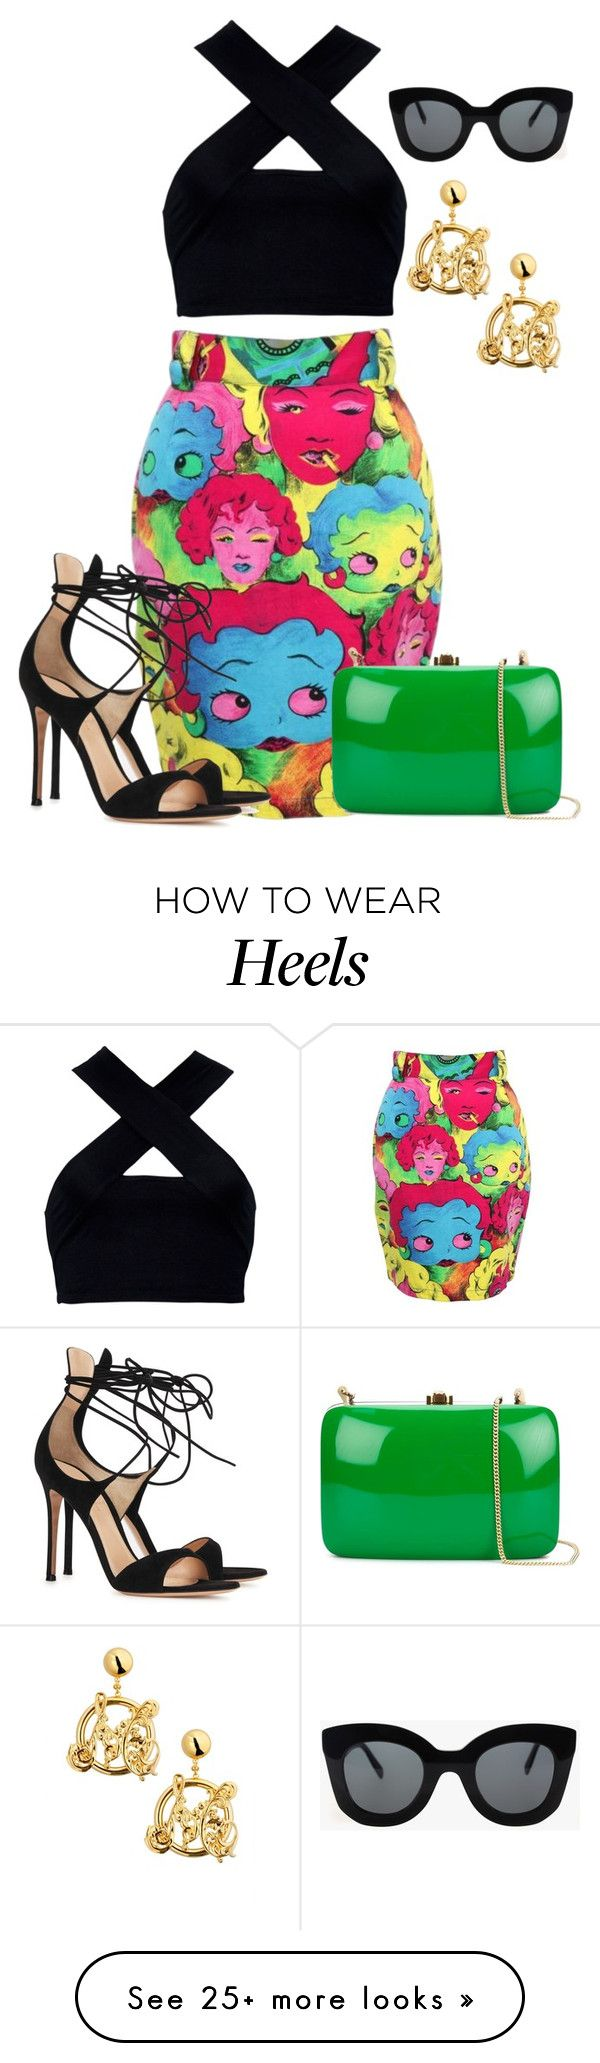 """""""Betty on the Booty"""" by perichaze on Polyvore featuring Versace, Motel, Gianvito Rossi, Rocio, Moschino, CÉLINE, women's clothing, women, female and woman"""